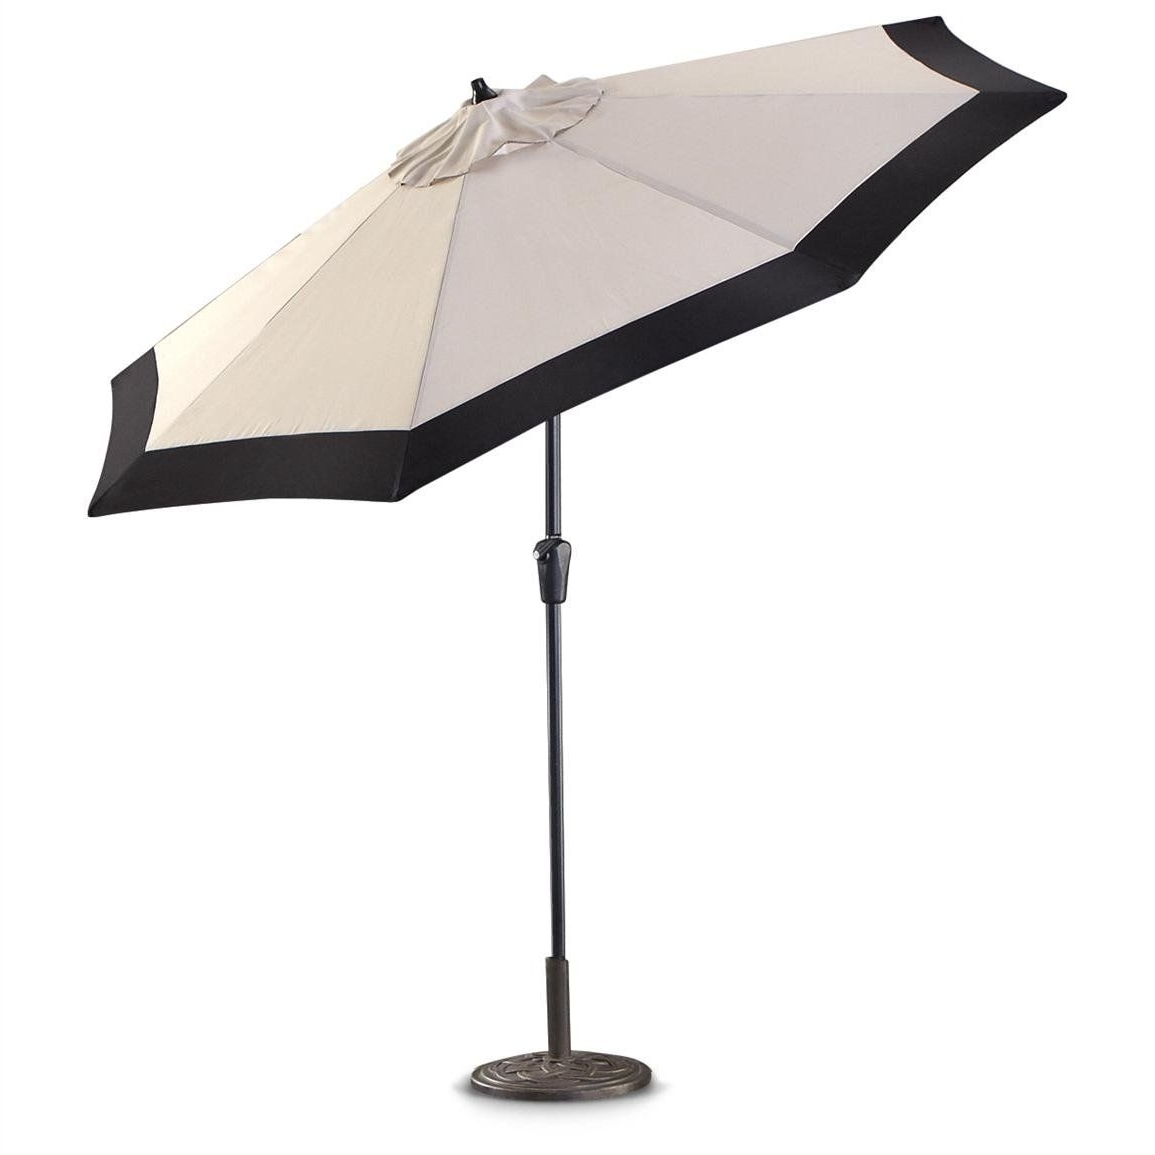 Black And White Patio Umbrellas Throughout Most Popular White Patio Umbrellas #5: Castlecreek 9 Two Tone Deluxe Market Patio (View 7 of 20)